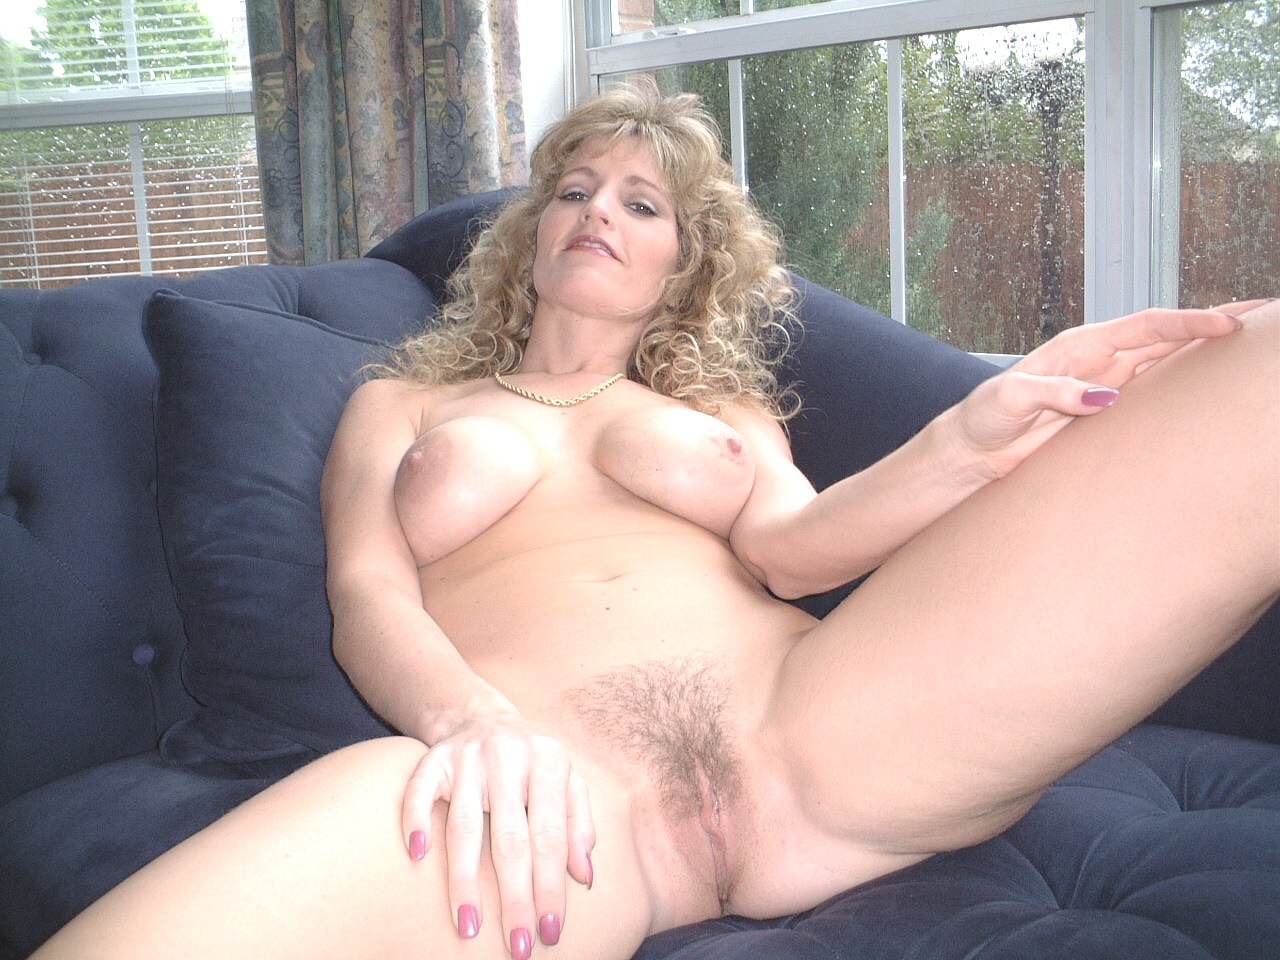 dhillon-hacked-wife-pics-nude-russian-women